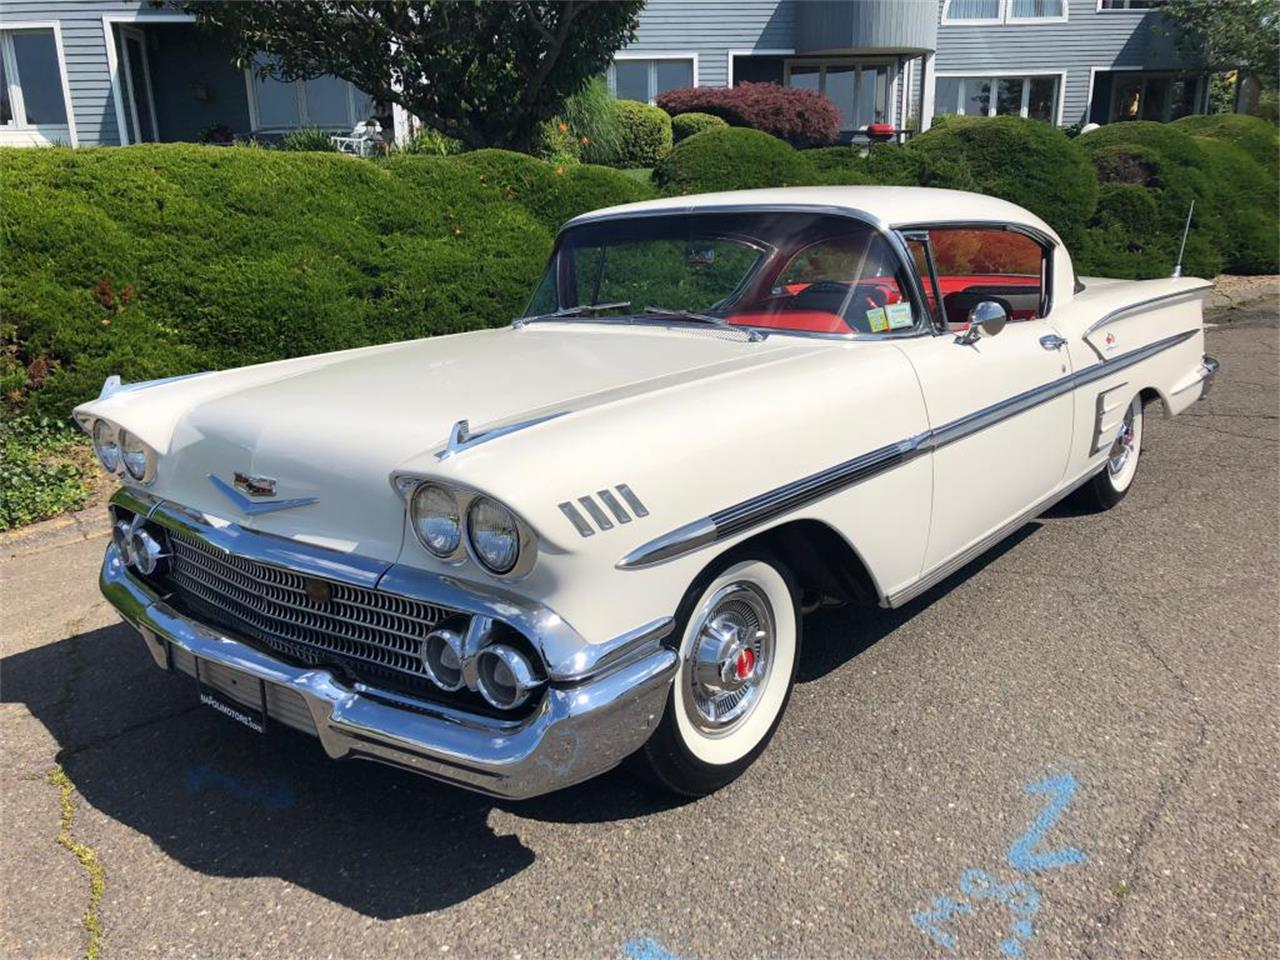 1958 Chevrolet Impala (CC-1235210) for sale in Milford City, Connecticut